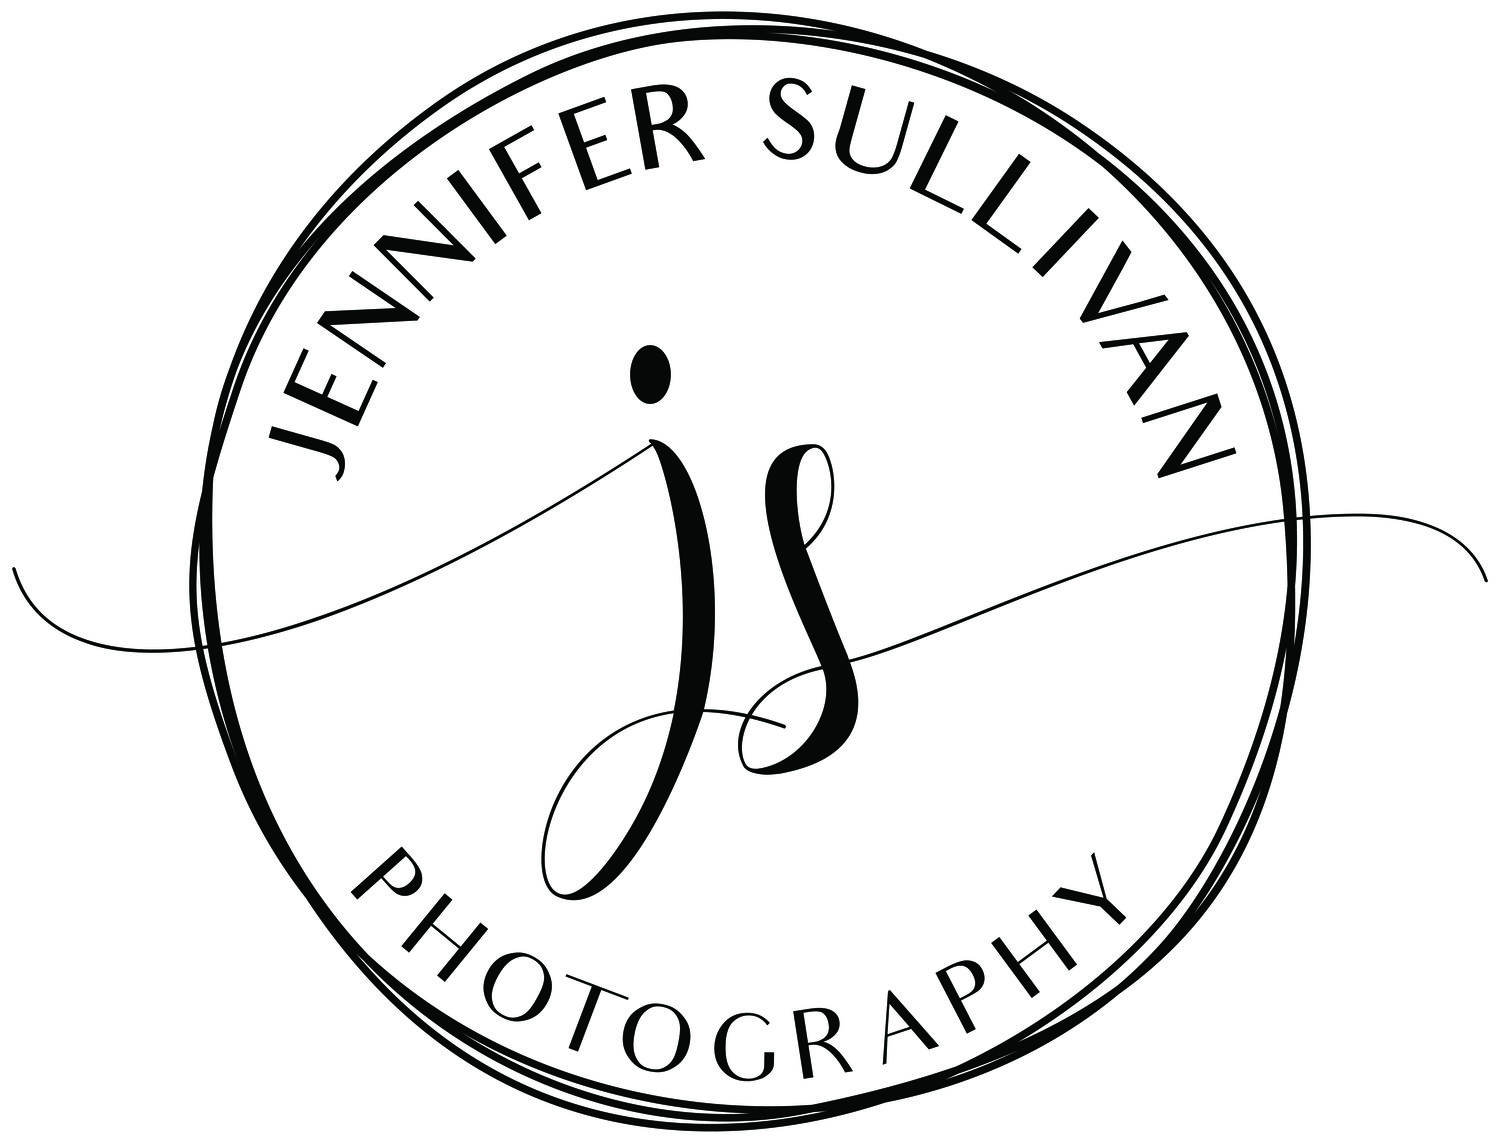 Jennifer Sullivan Photography